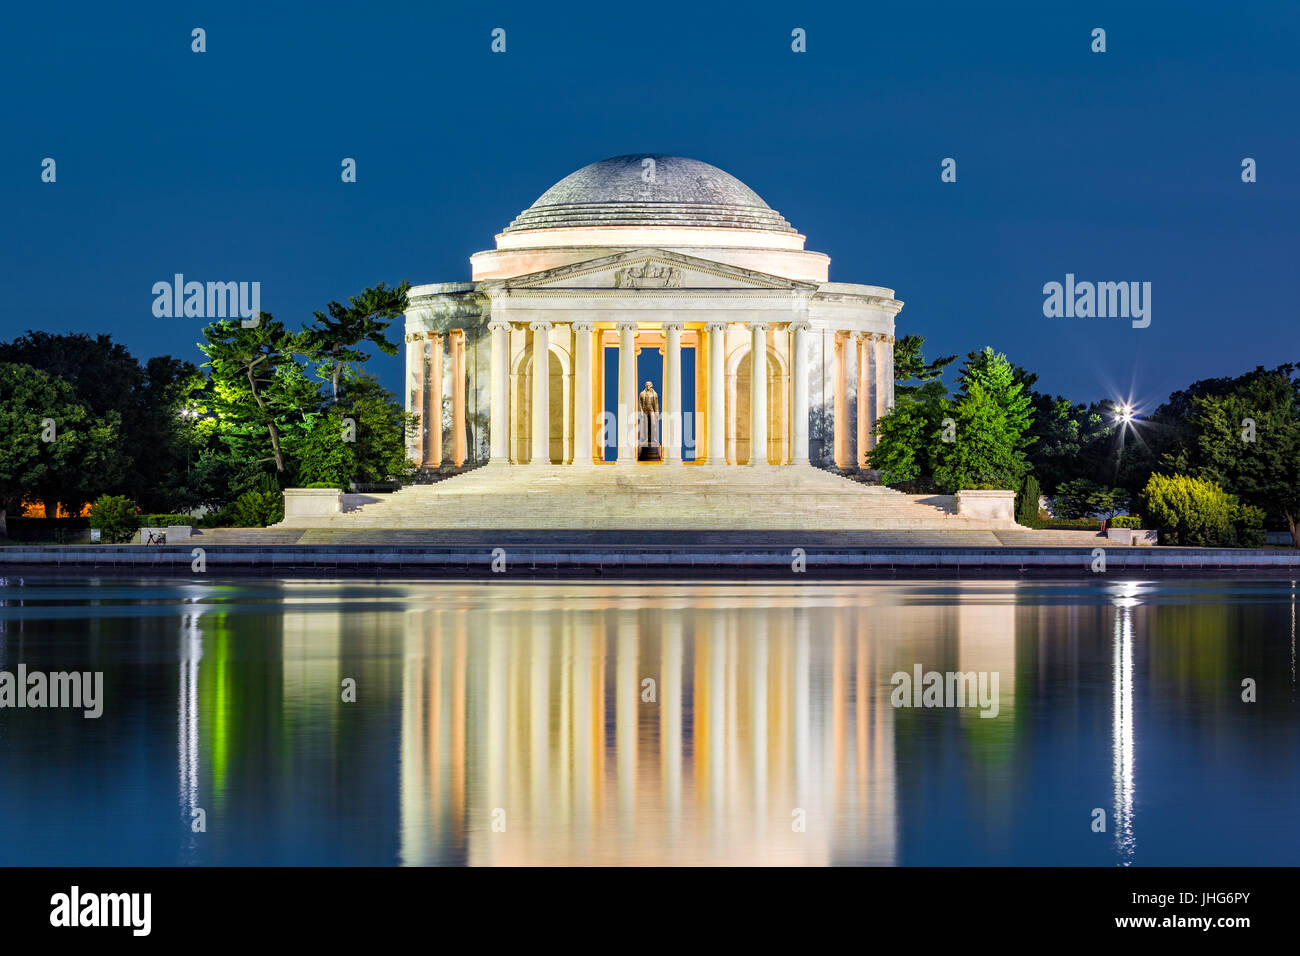 Jefferson Memorial in Washington DC. The Jefferson Memorial is a public building managed by the National Park Service - Stock Image